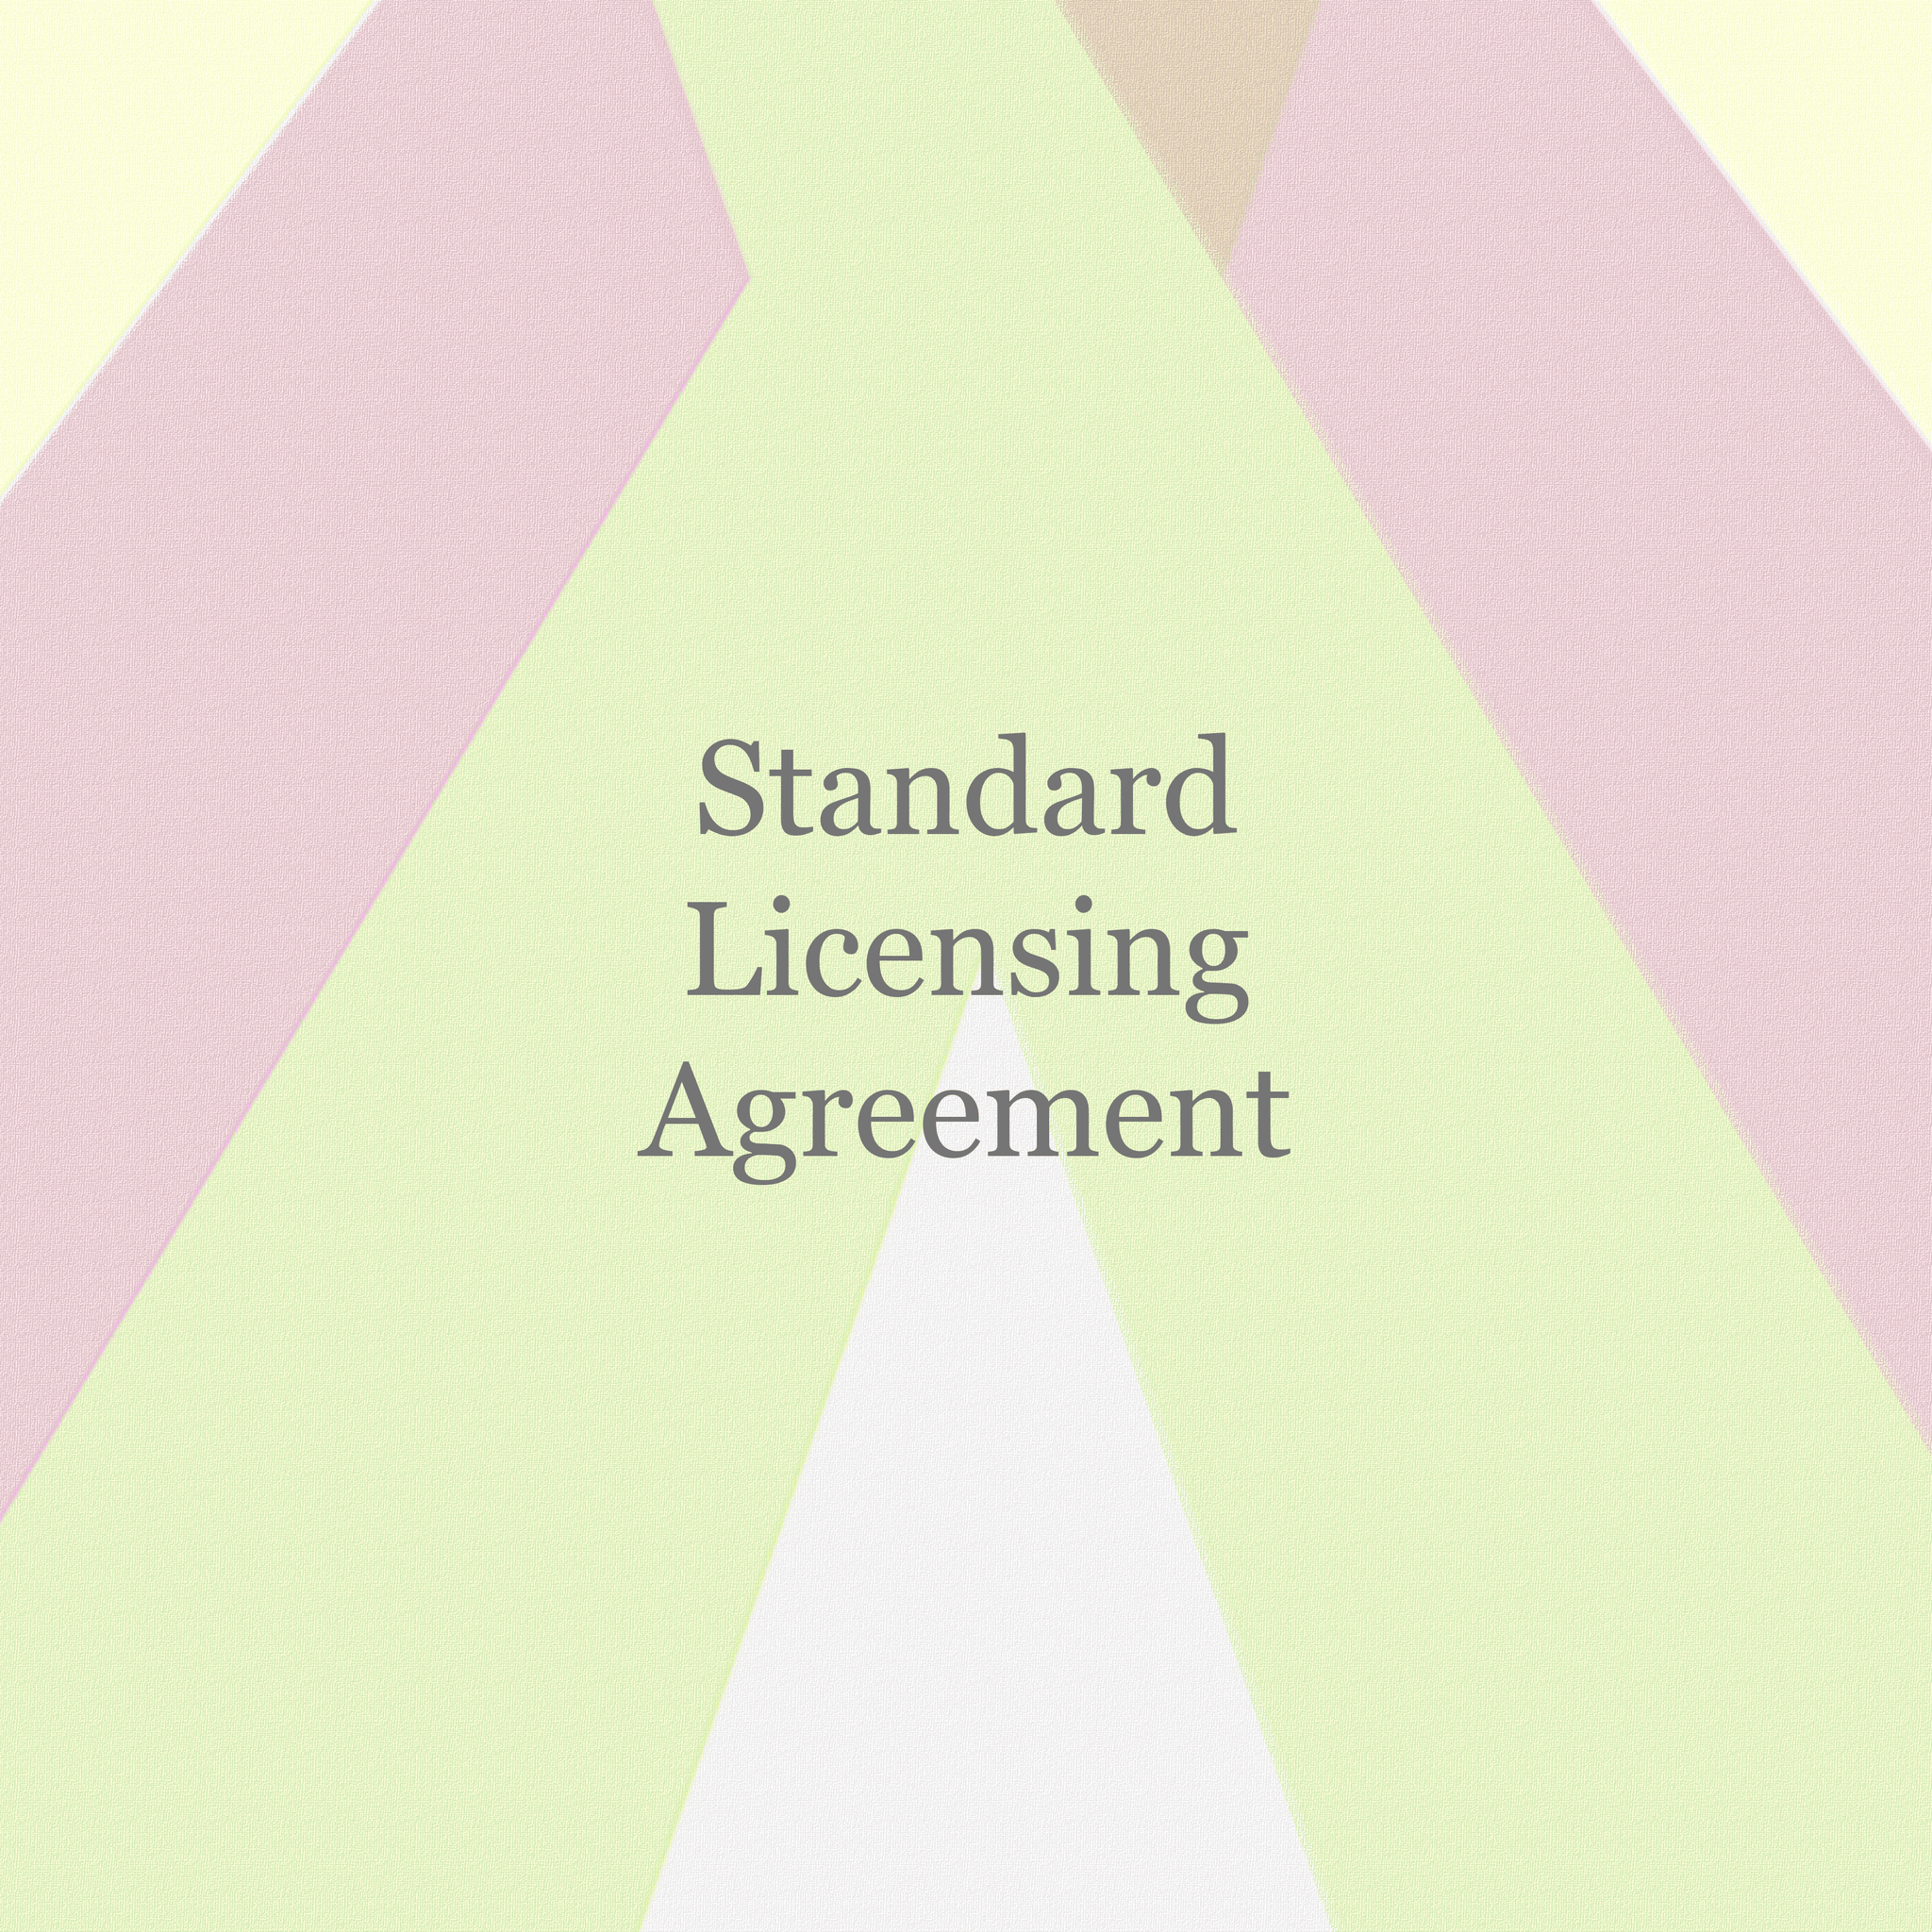 Standard Licensing Agreement